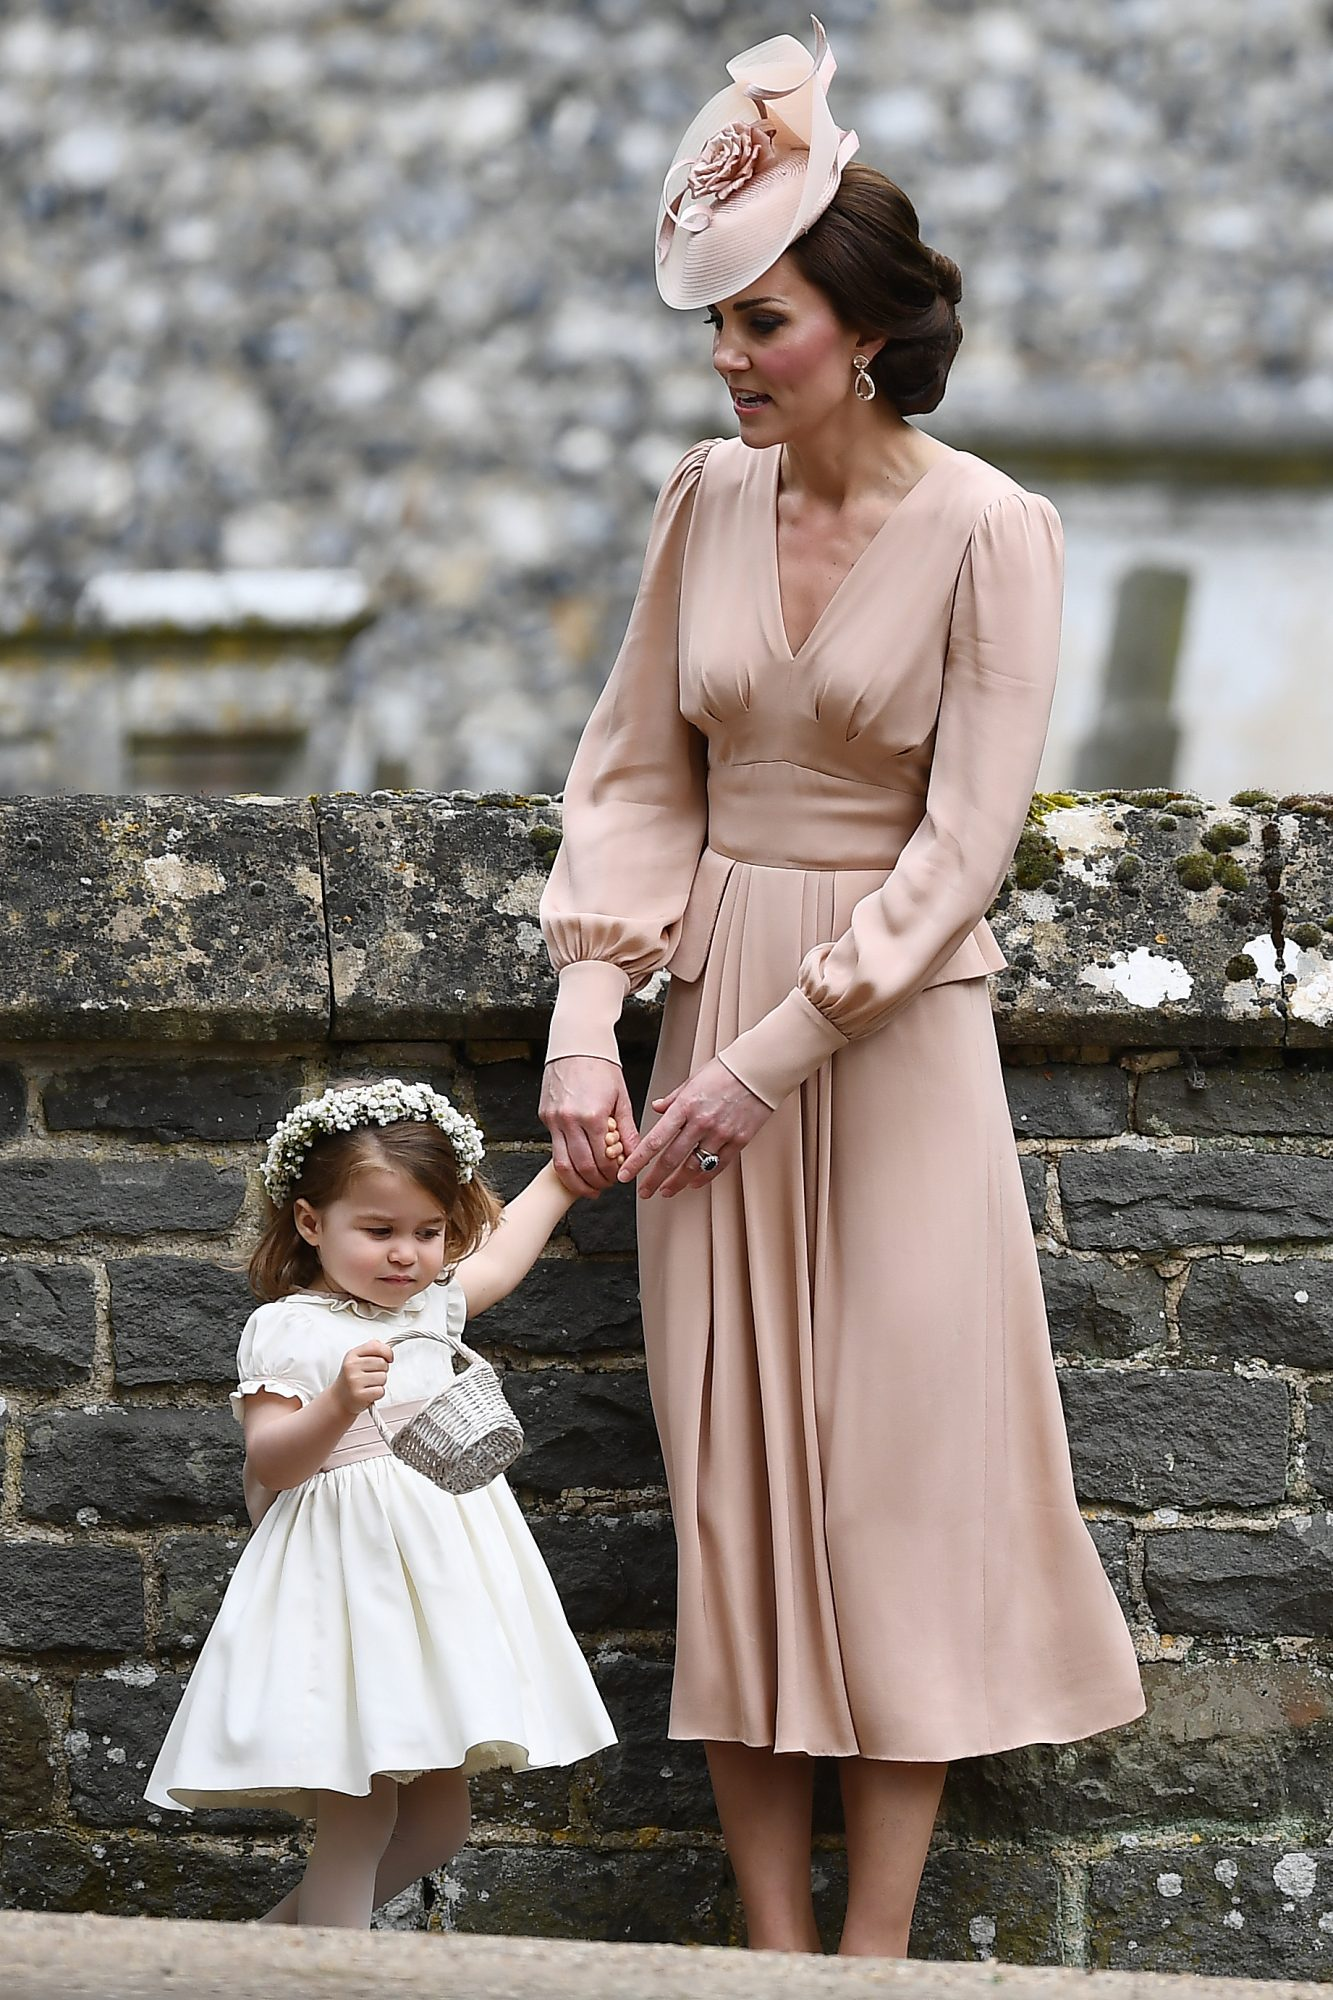 Pippa S Wedding.Kate Middleton Wore A Blush Dress To Pippa S Wedding And It S